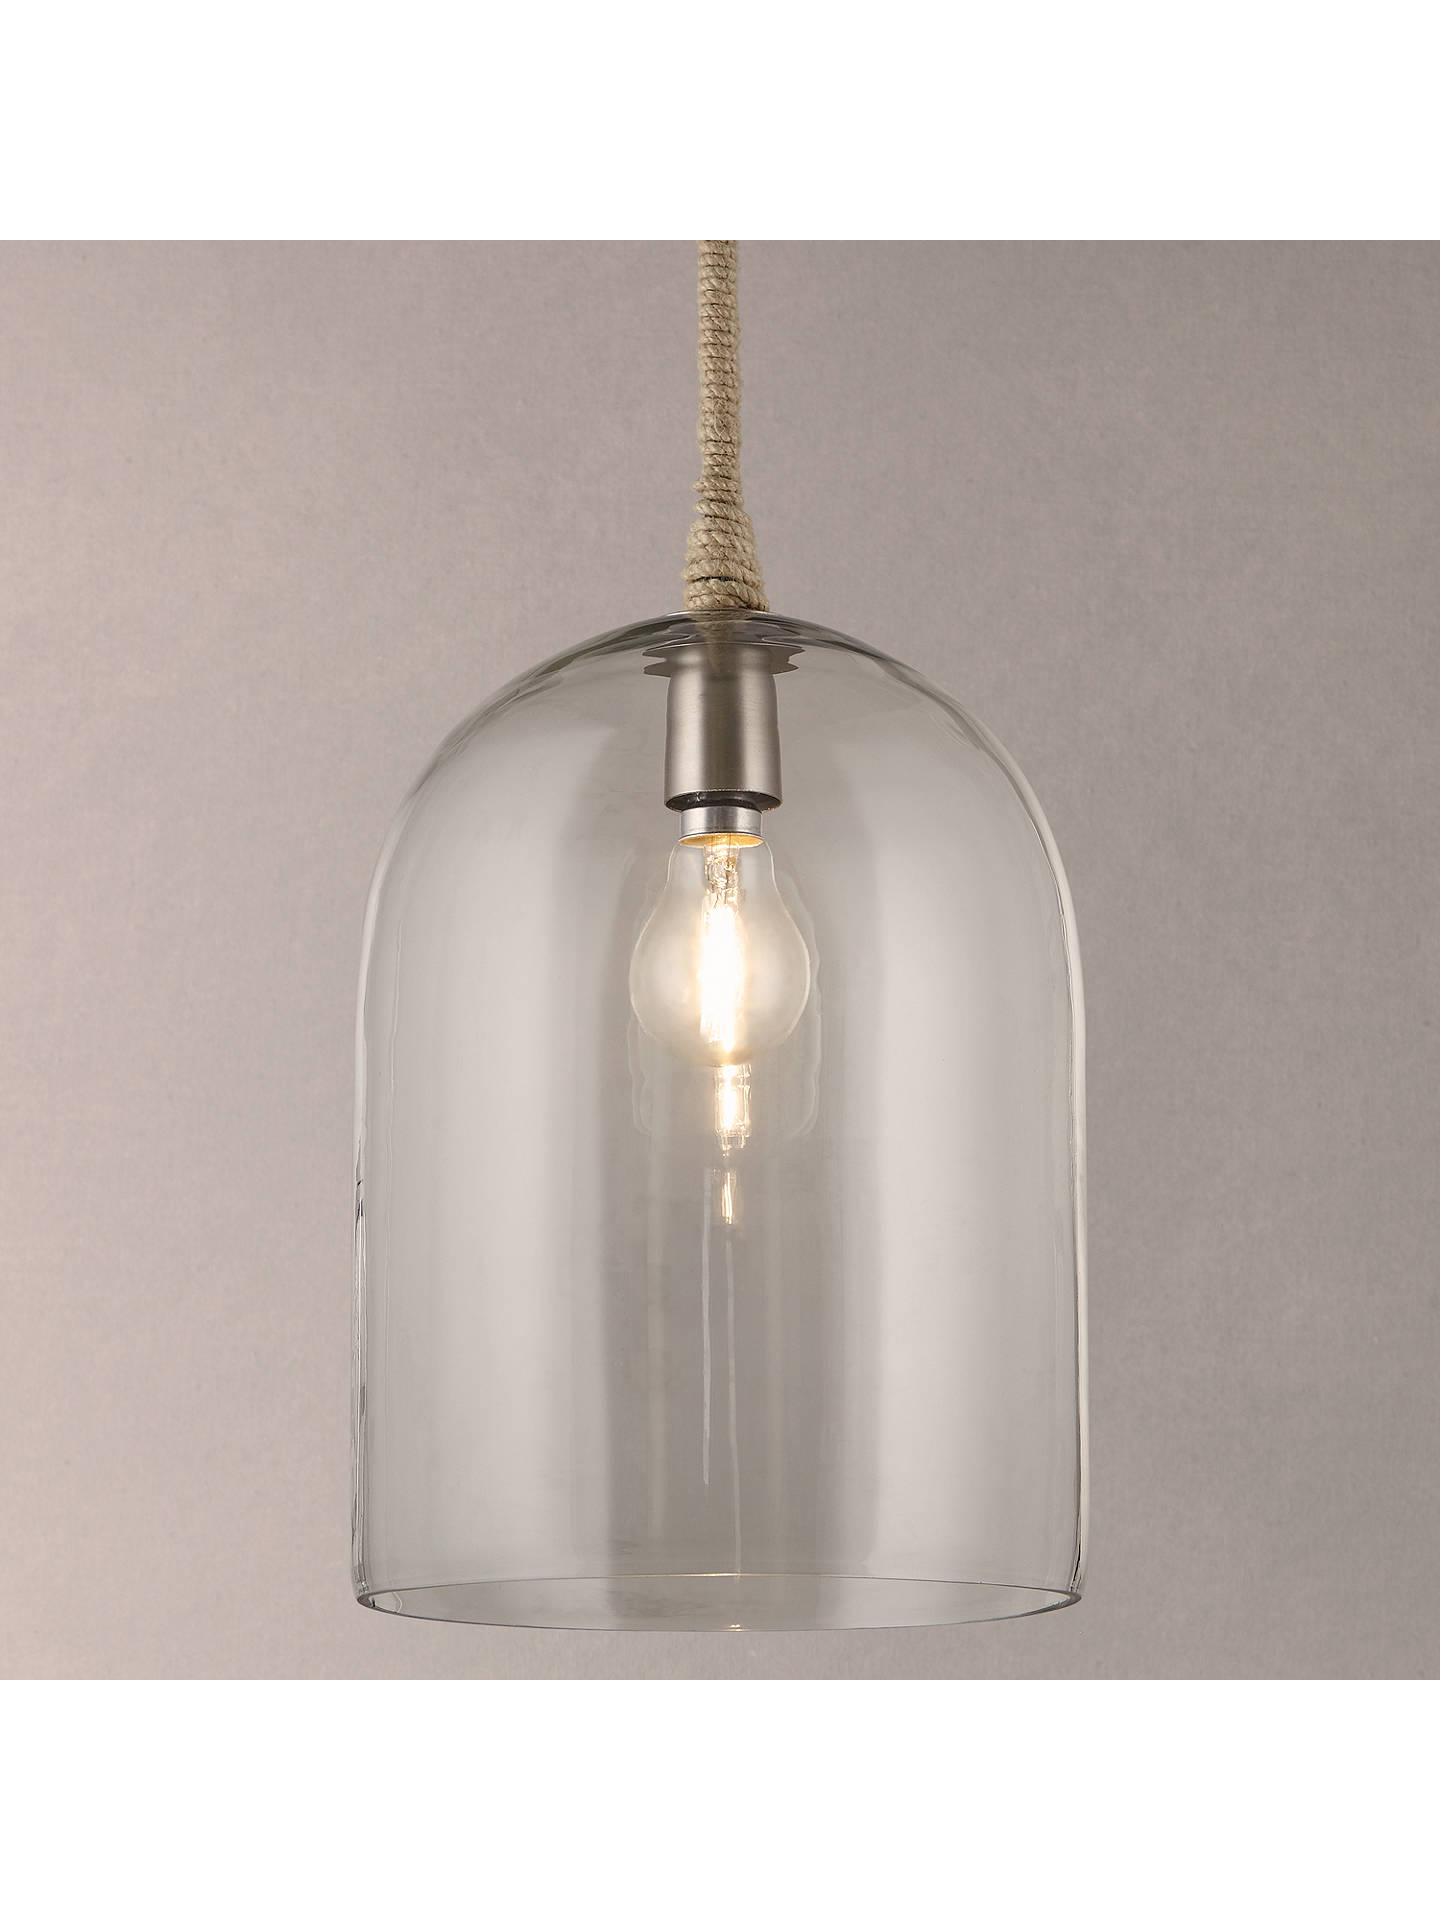 John Lewis Amp Partners Cloche Glass Pendant Ceiling Light At John Lewis Amp Partners